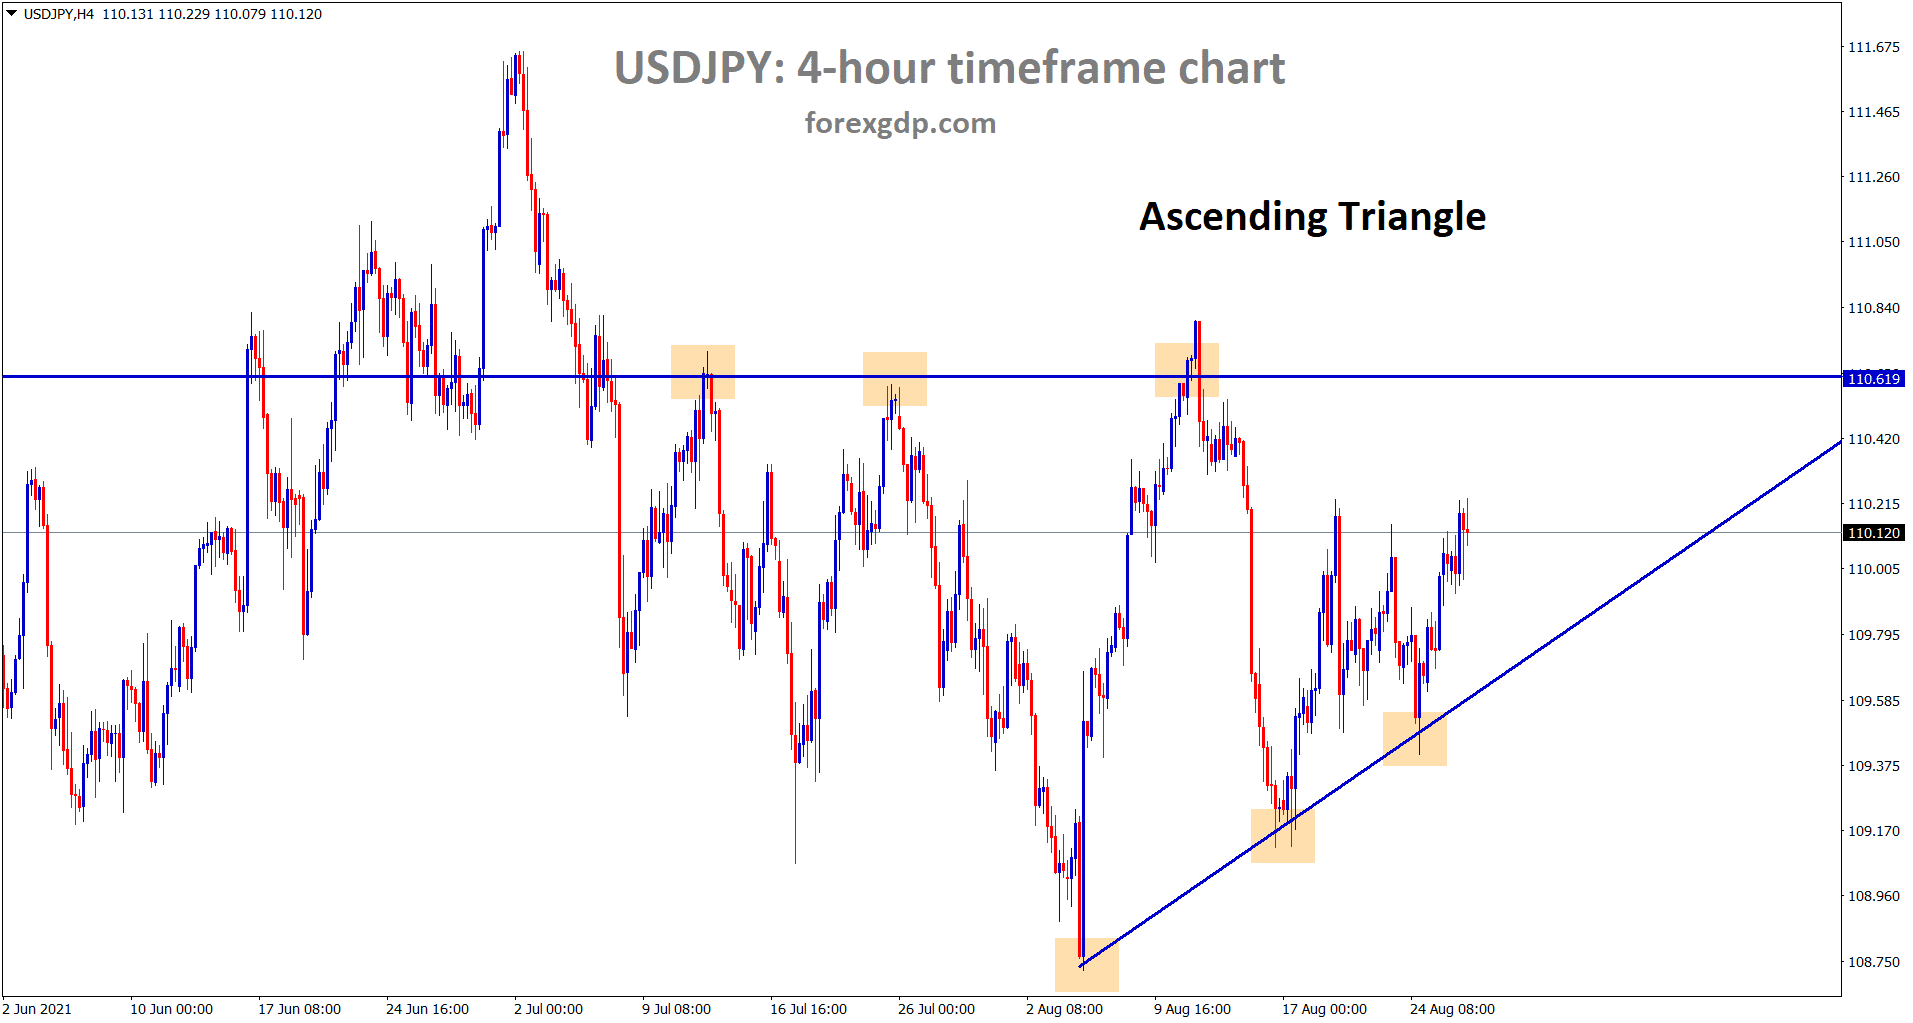 USDJPY is moving in an Ascending Triangle pattern